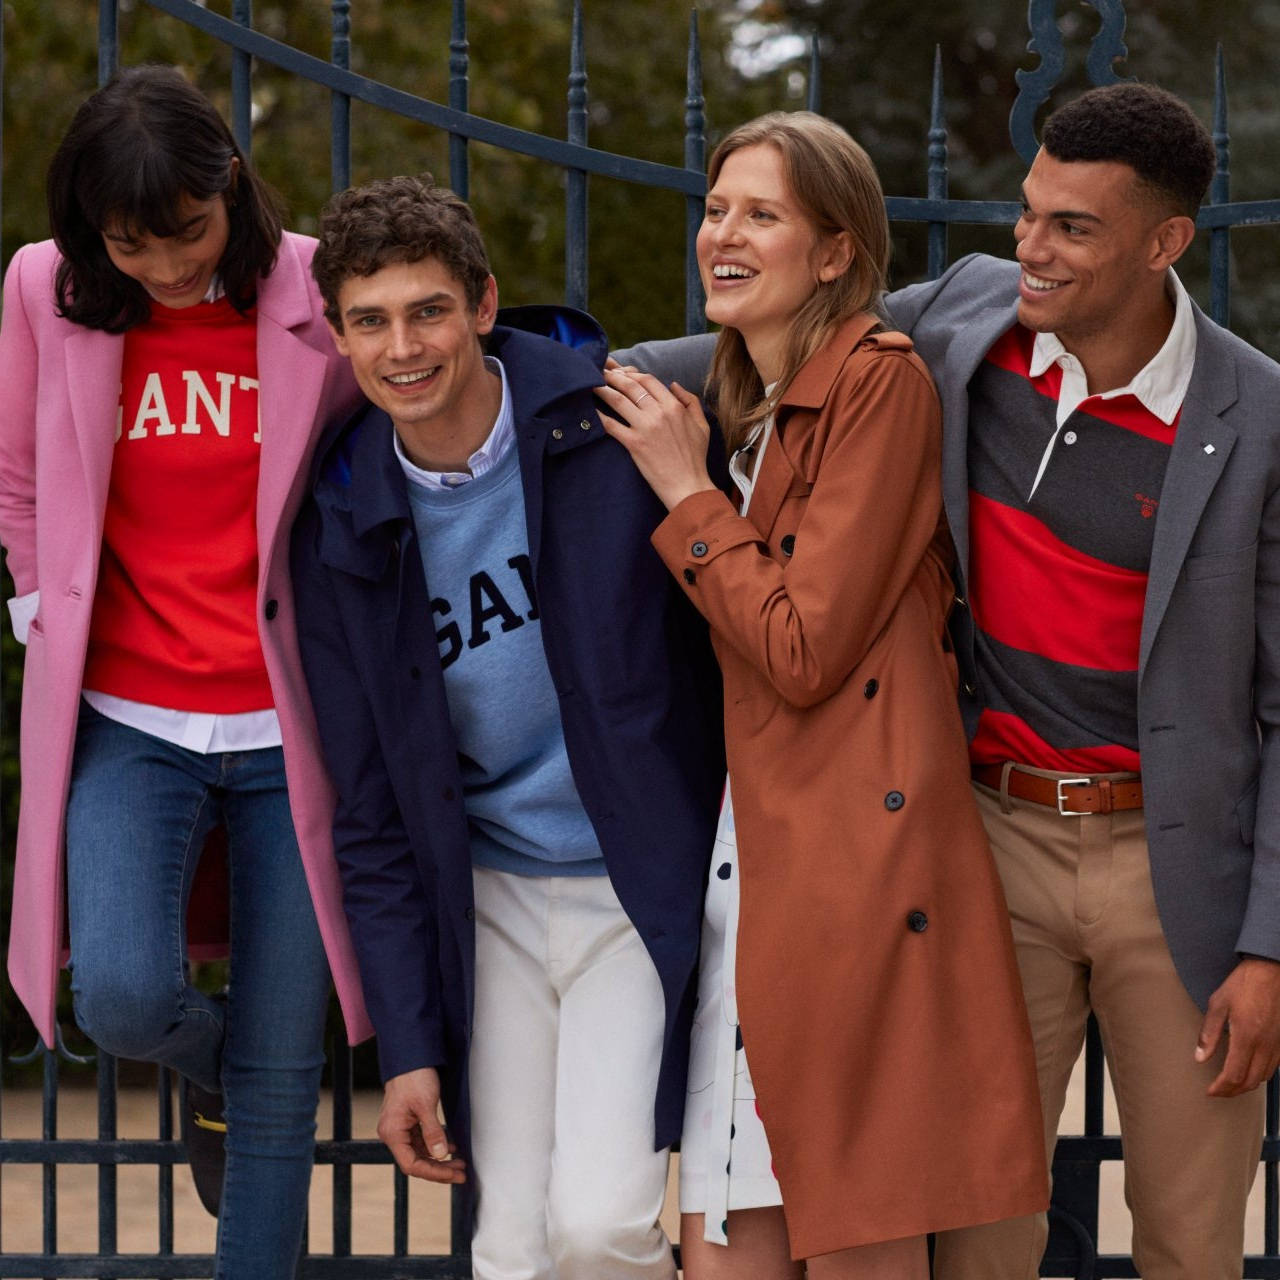 GANT - Below wholesale, prices as marked